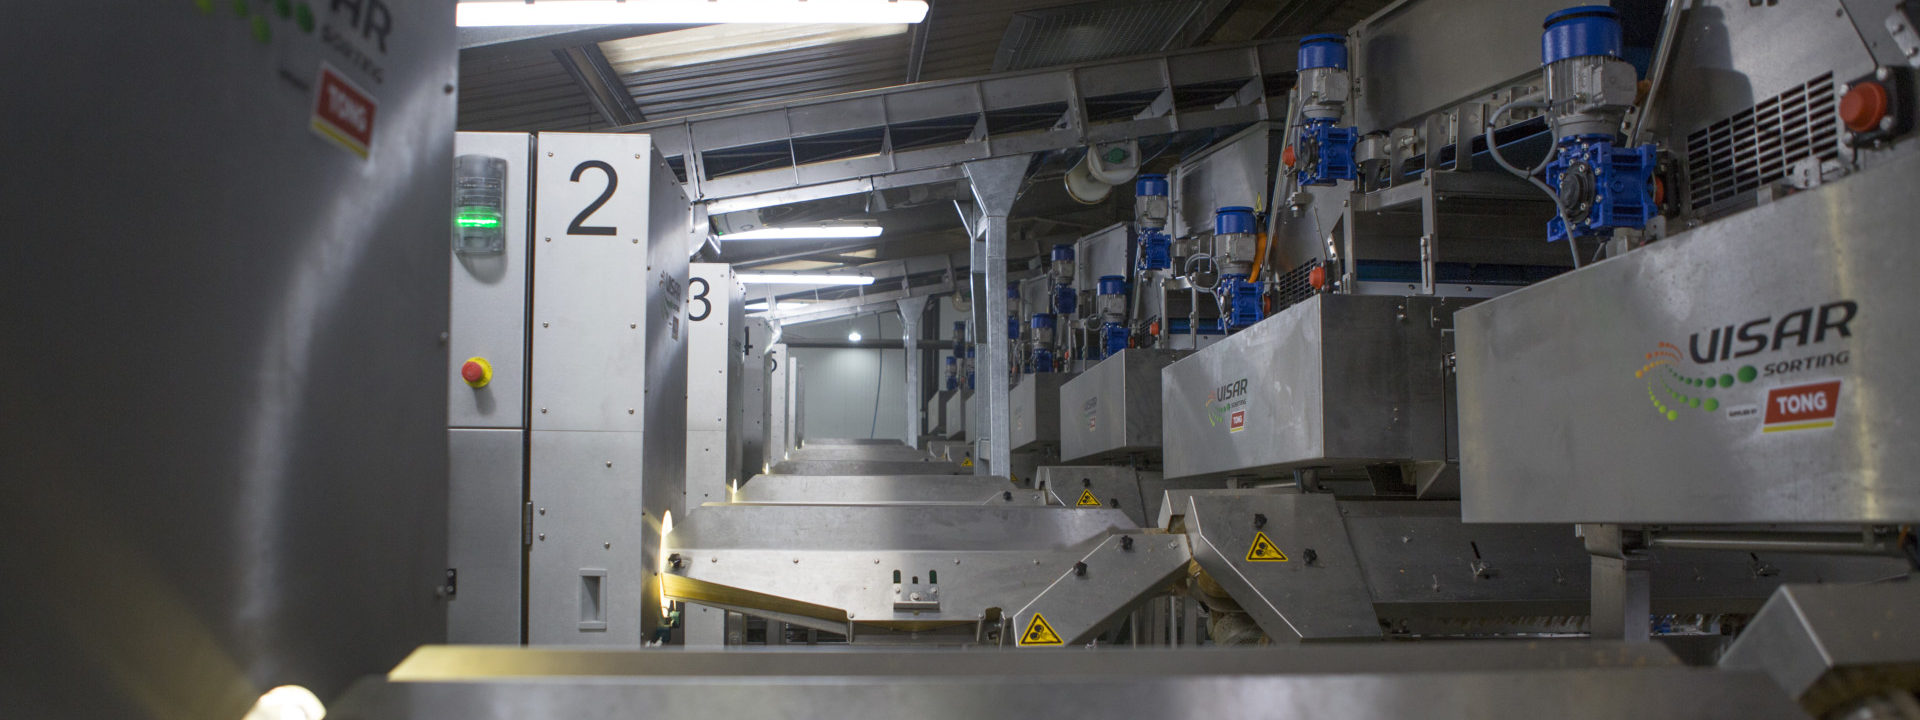 tong-visar-carrot-optical-sorting-grading-line-1